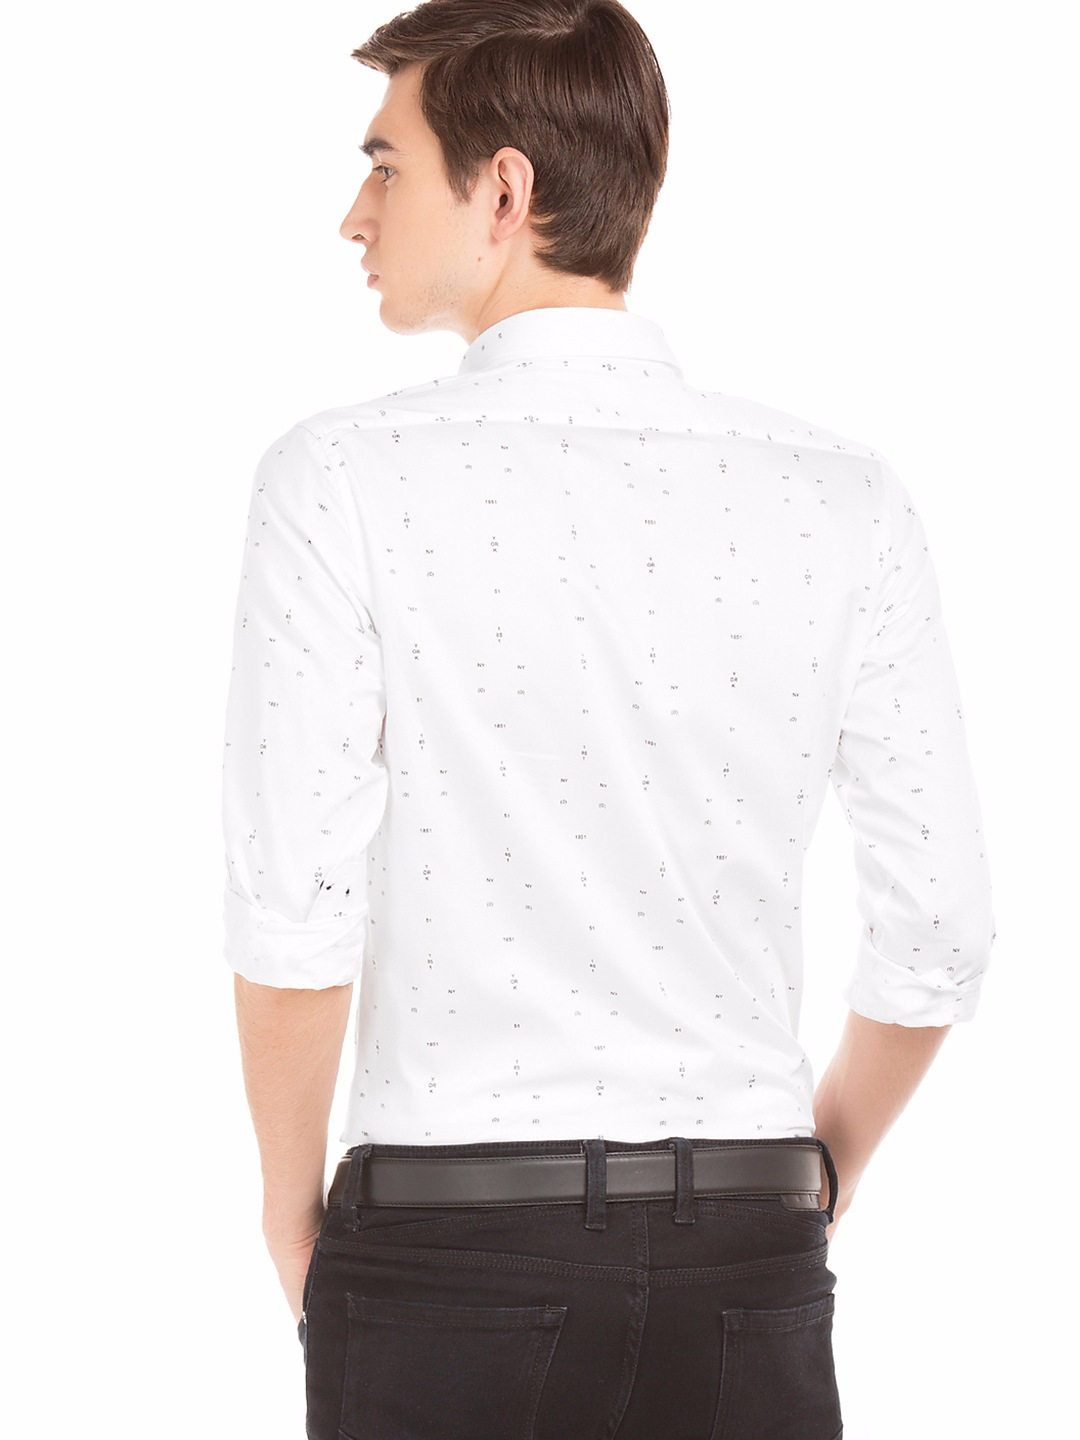 Buy Arrow Black Party Wear Shirt - ASTF Free Shipping 30 Days Return Cash on DeliveryPrice: ₹